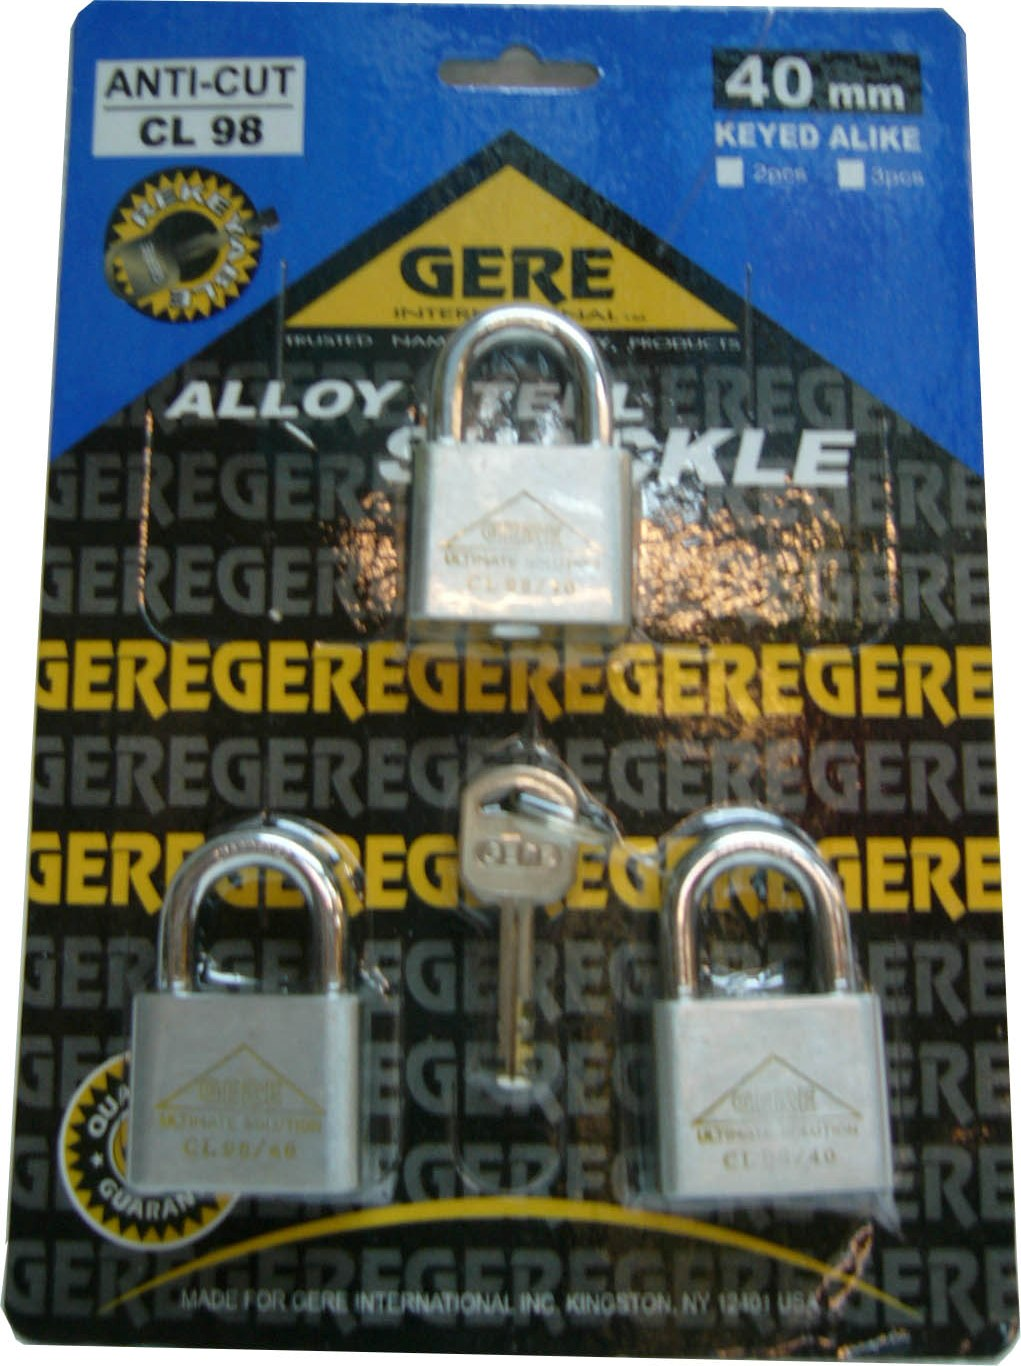 50MM*3PCS CL98 GERE ANTI CUT KEYALIKE PADLOCK